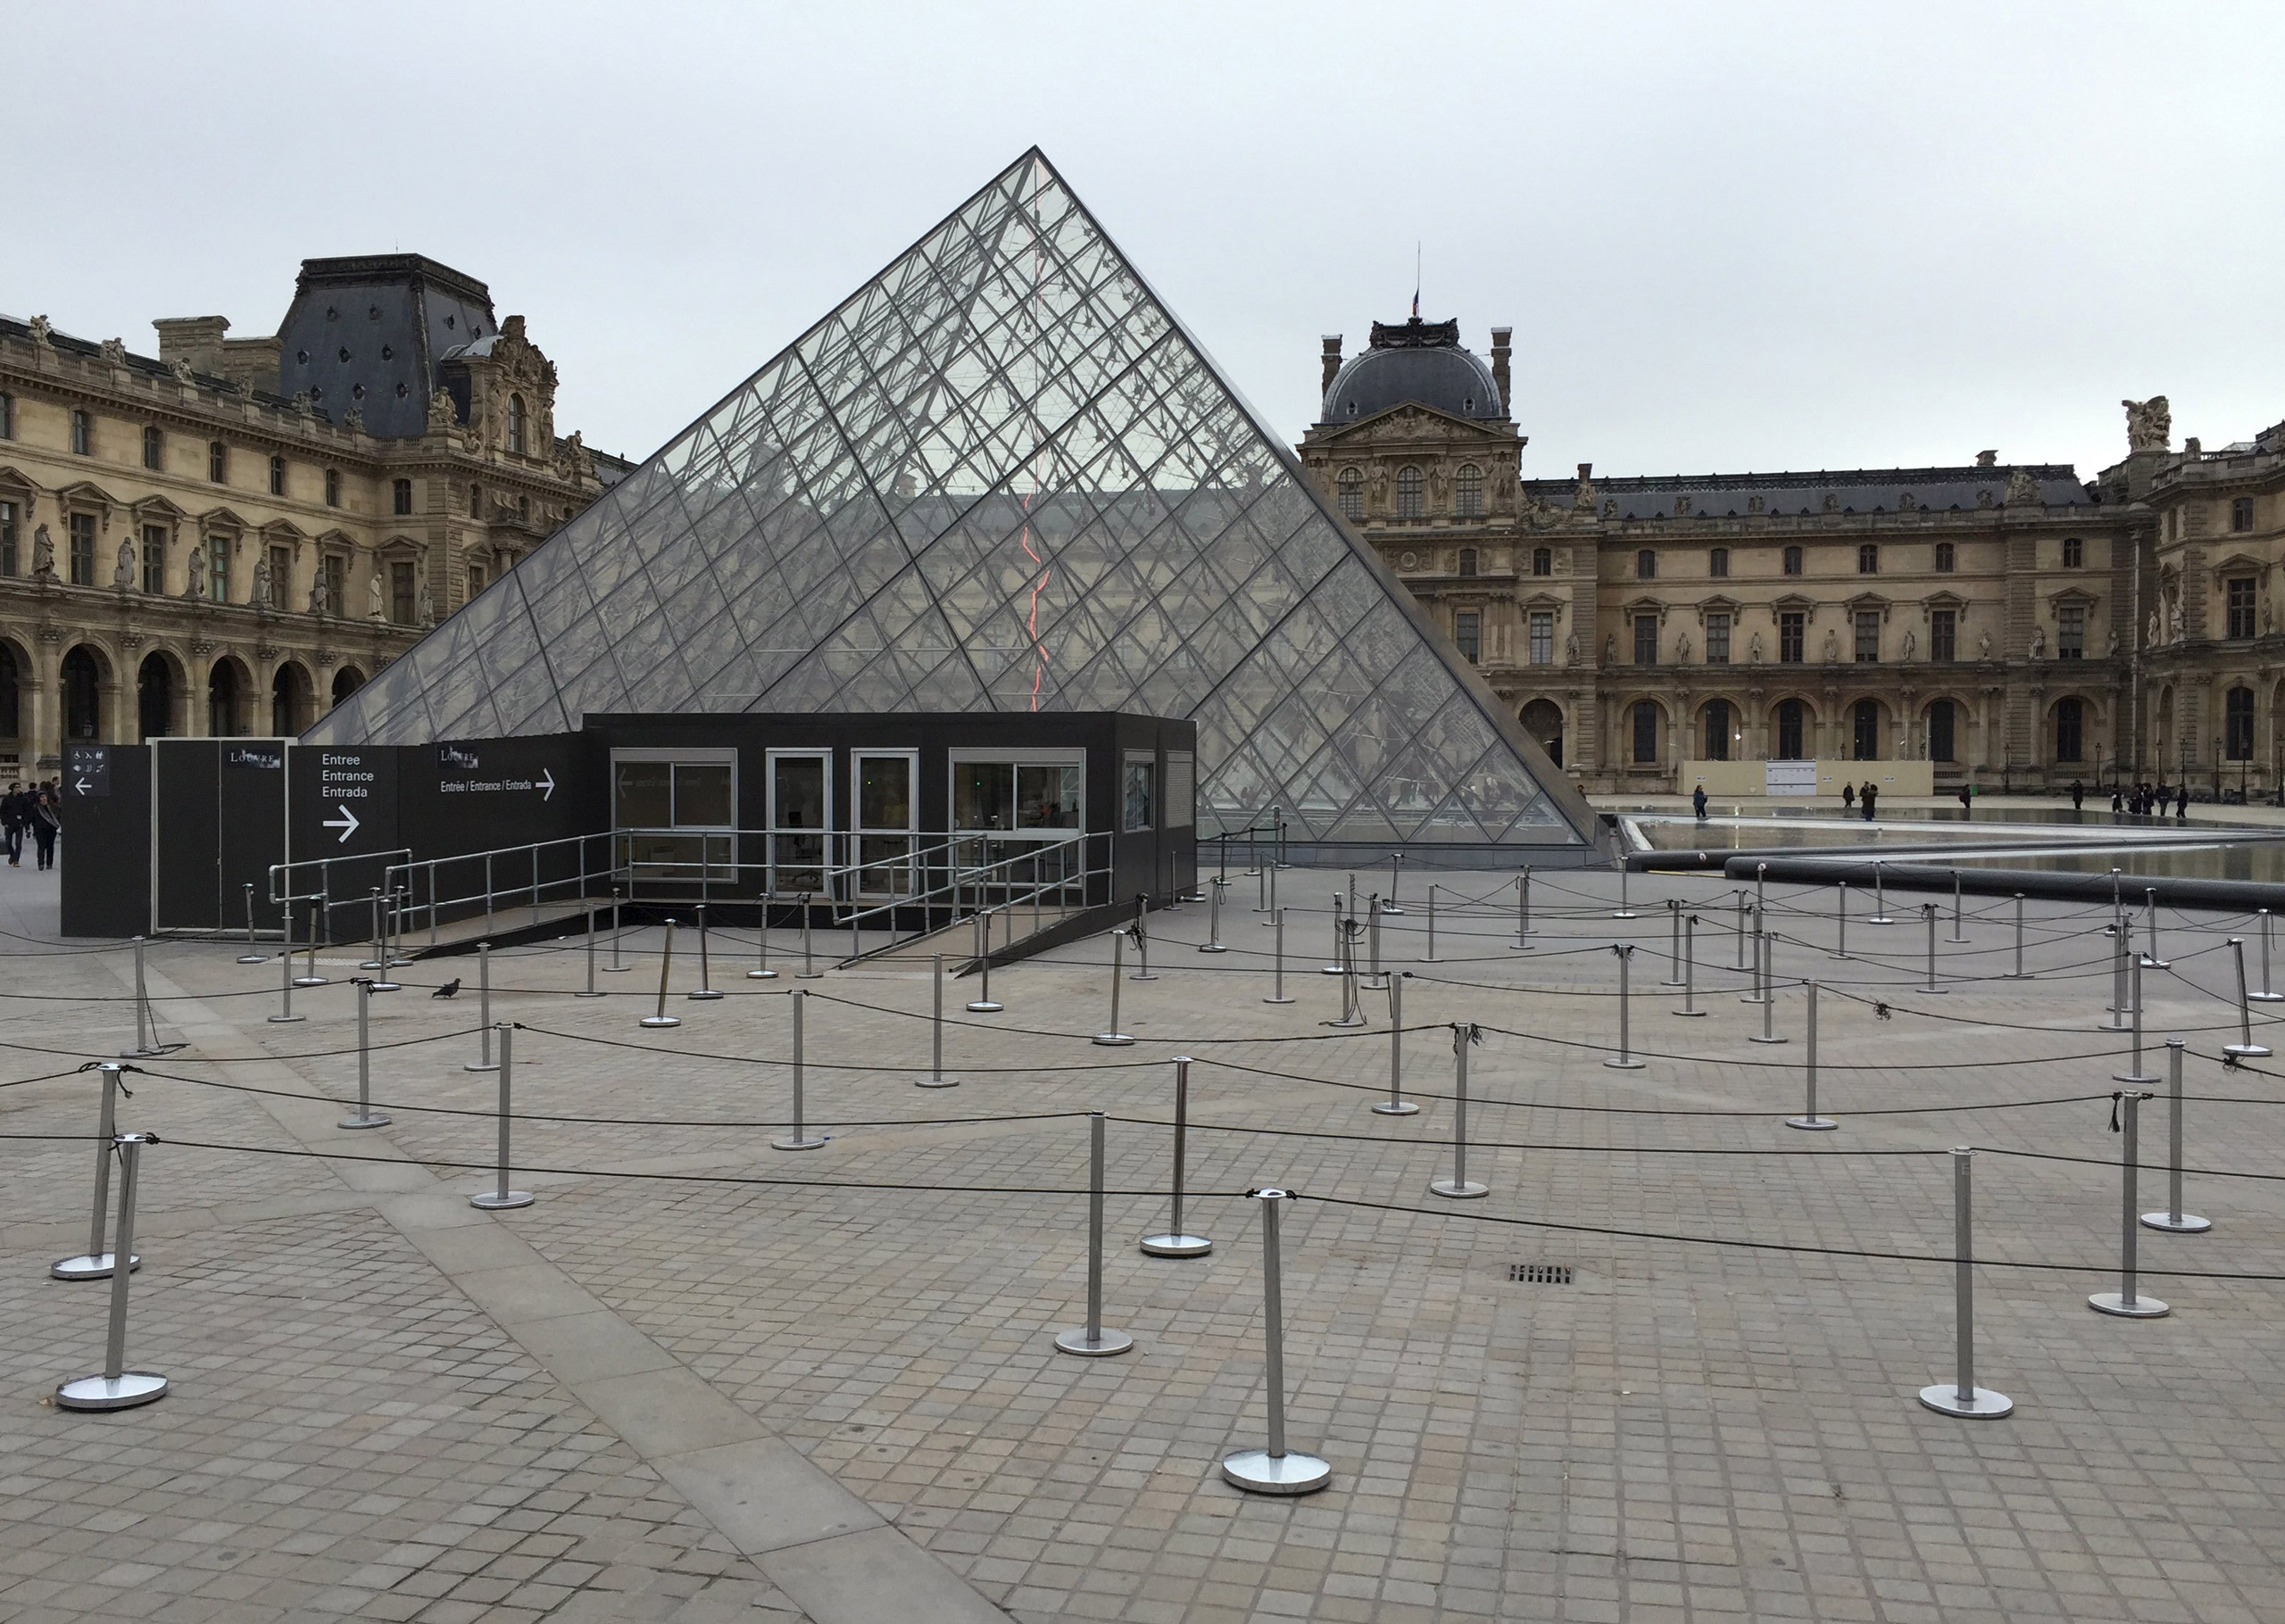 The entrance of the Louvre is seen deserted after the museum was closed following a series of deadly attacks in Paris, on Nov. 14, 2015.